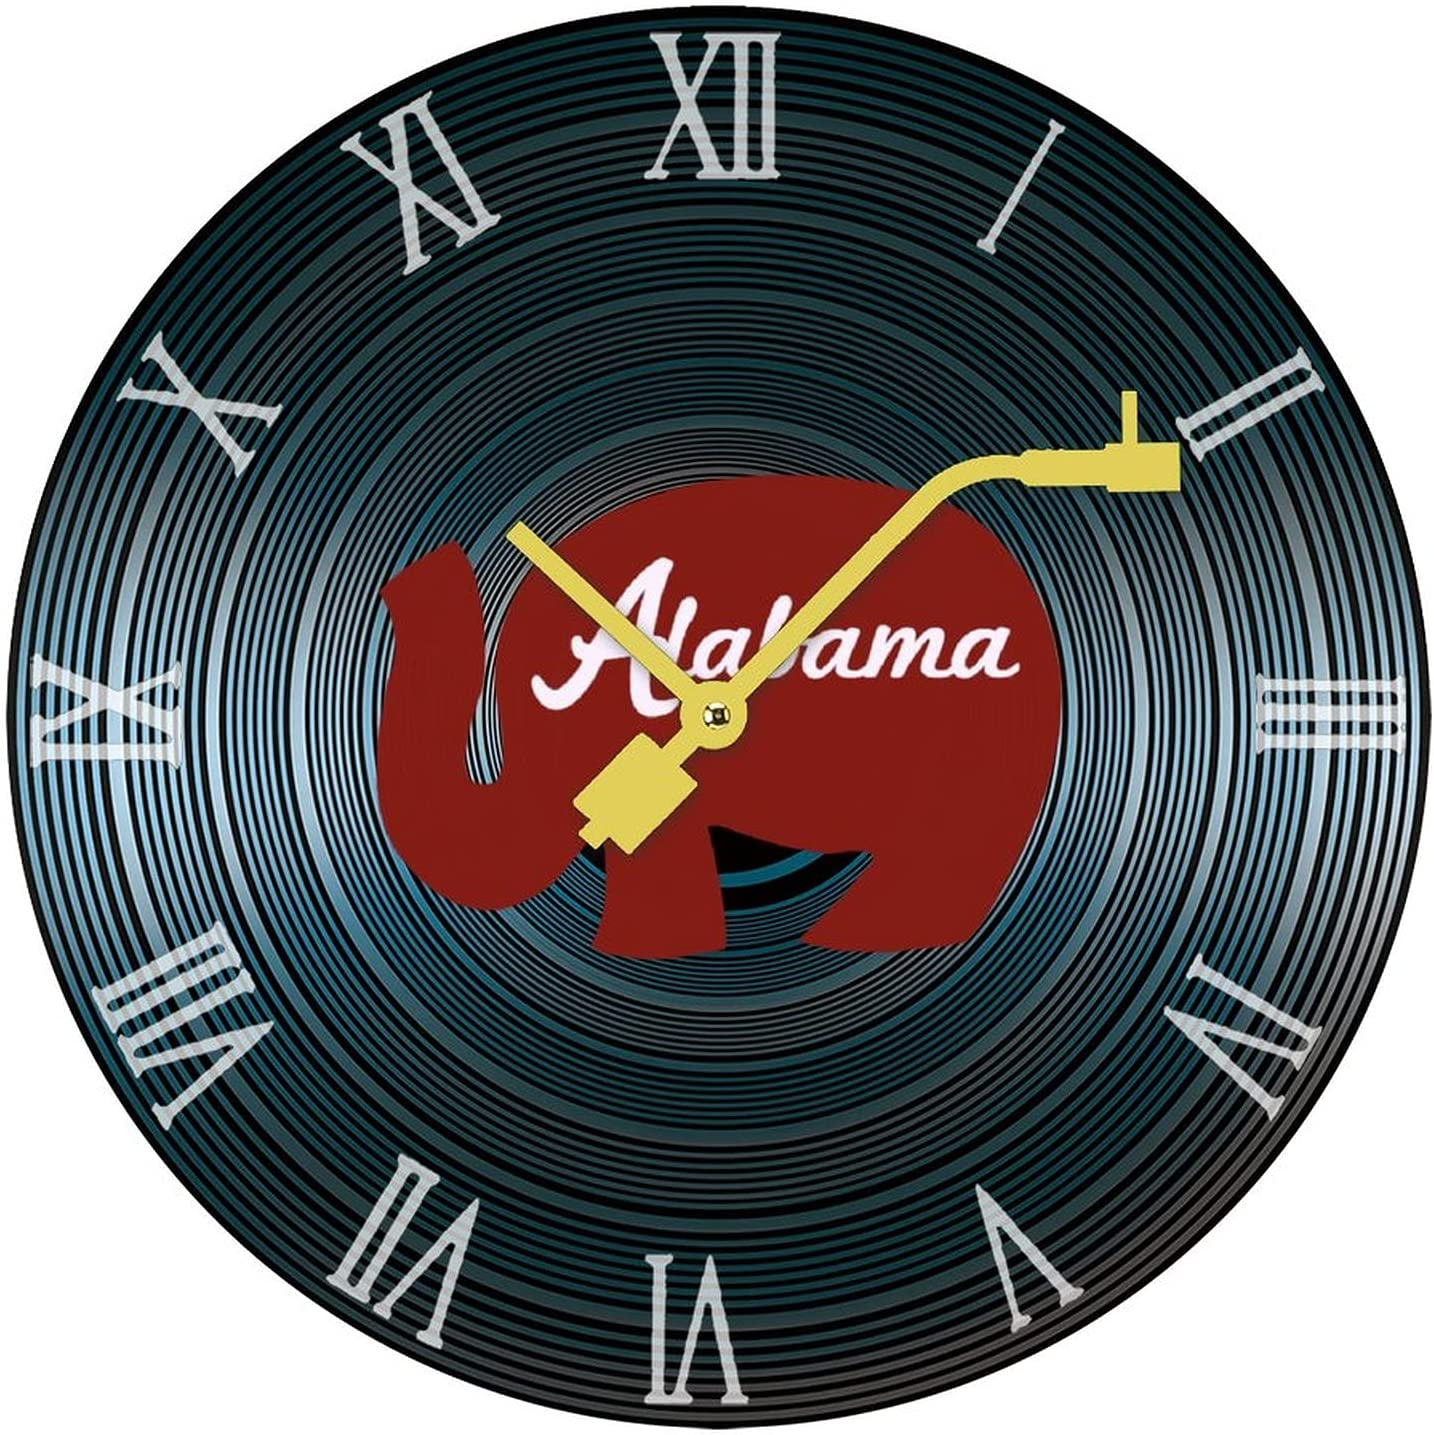 Red Alabama Elephant Wooden Wall Gifts Clock Home Liv Sale price for Clocks Retro